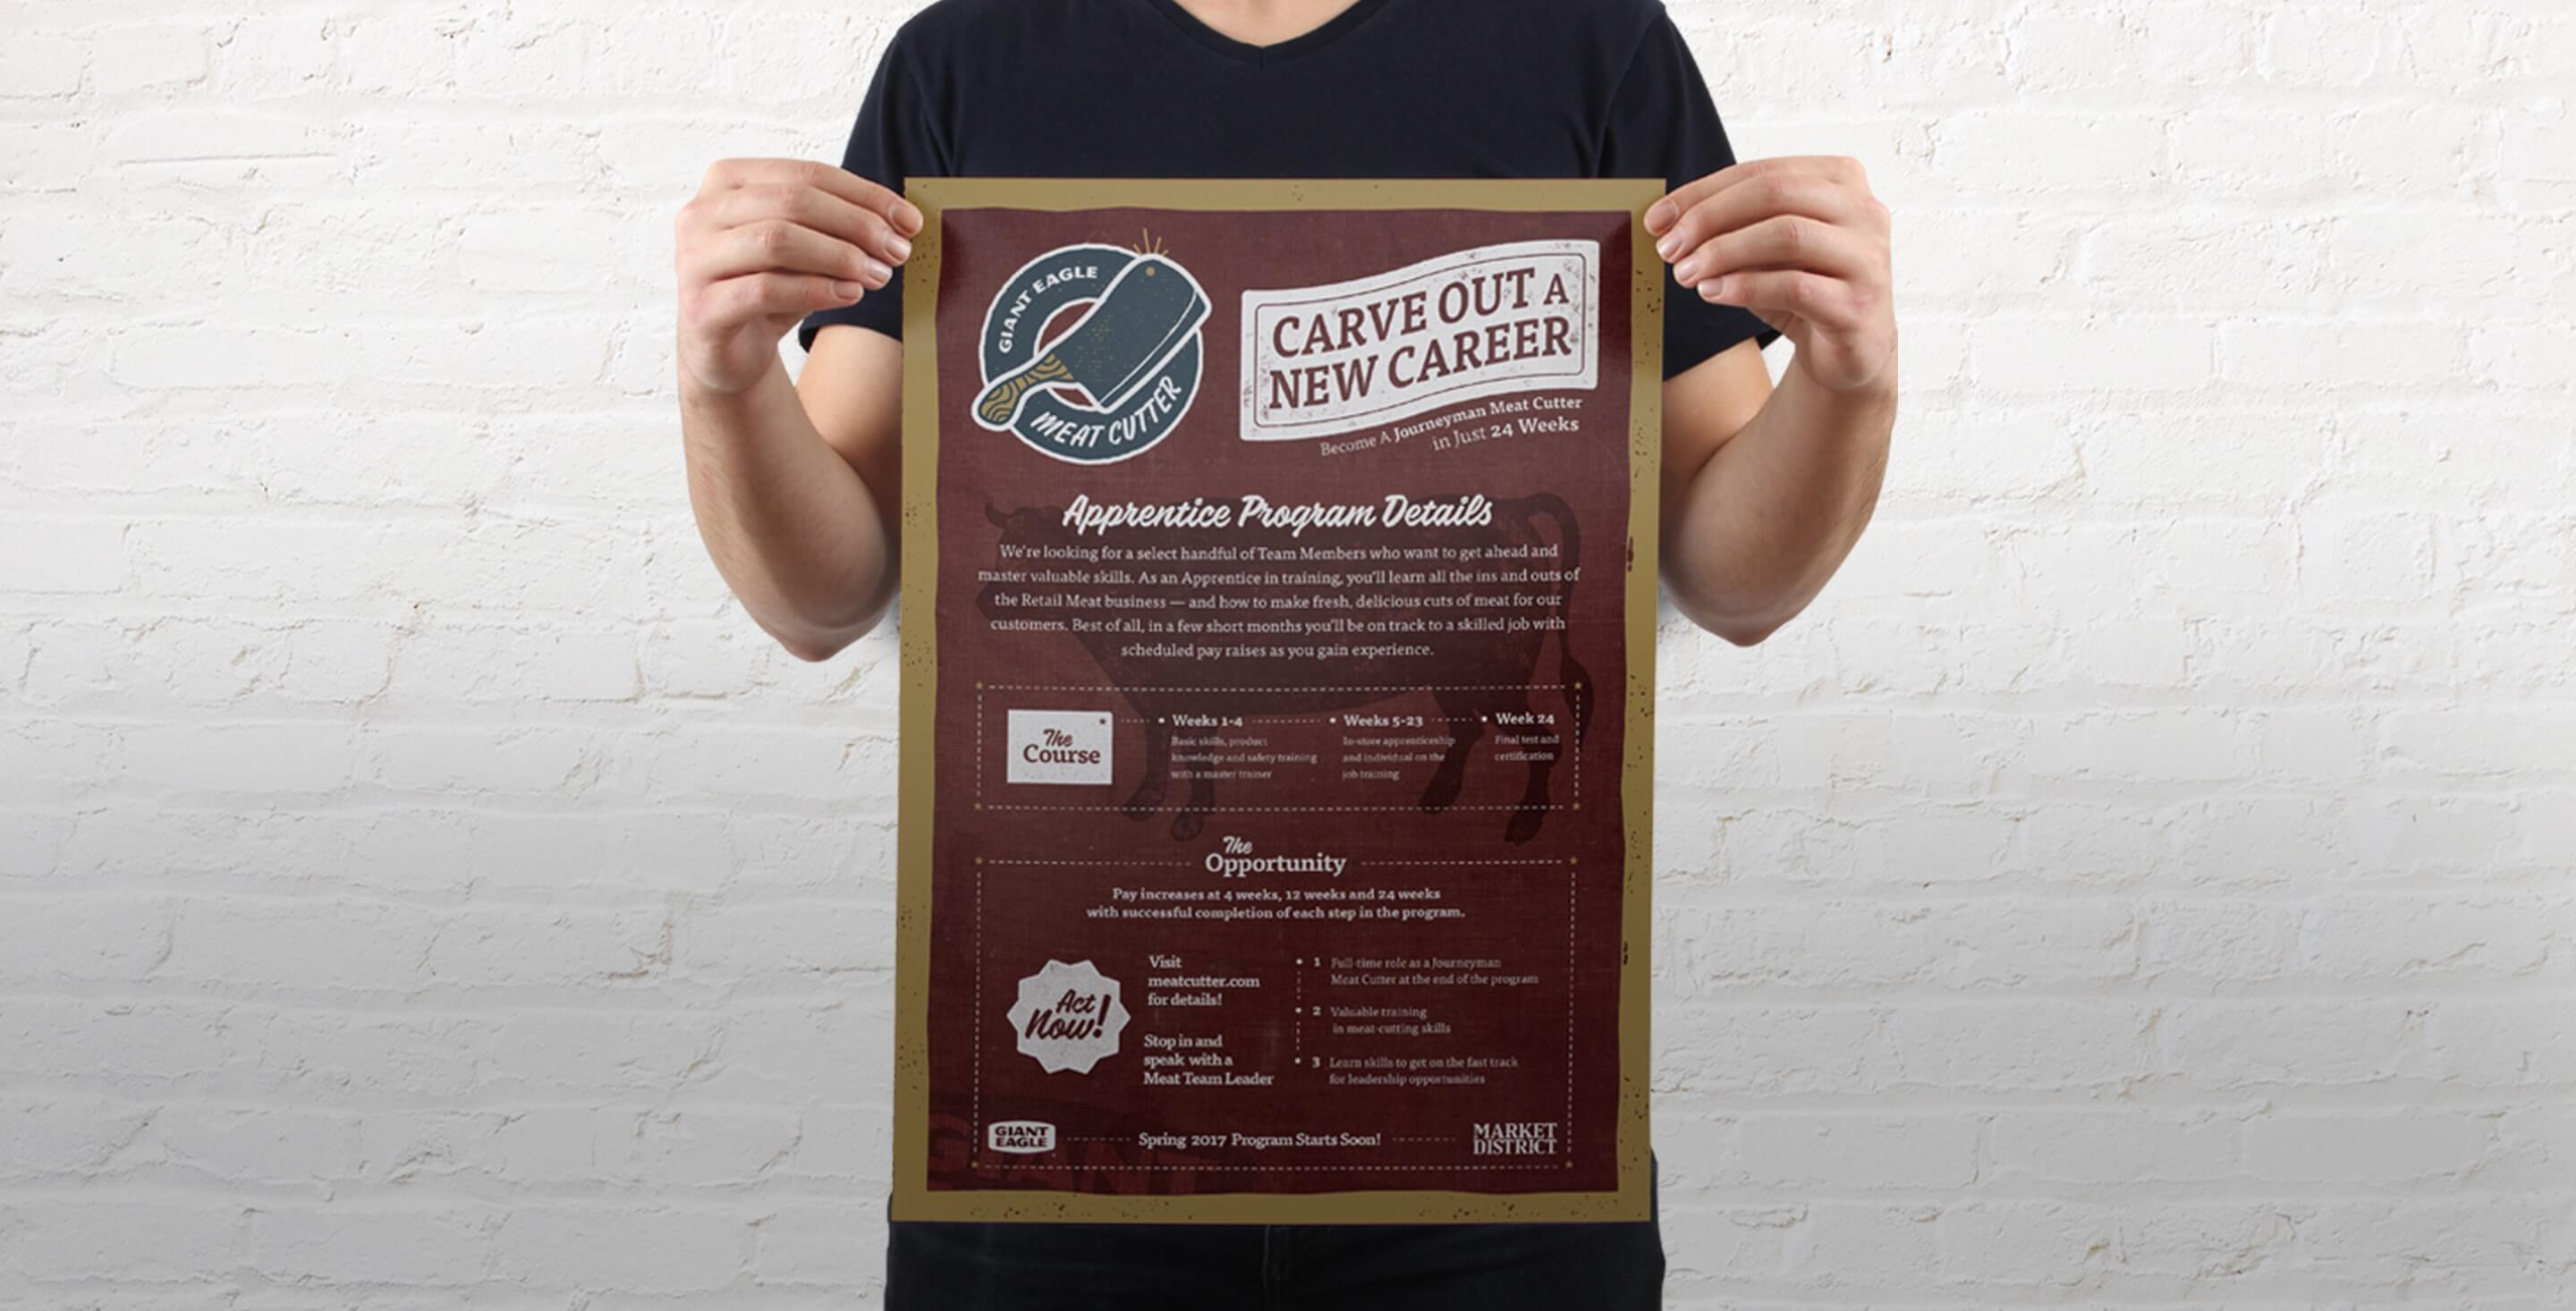 Giant-Eagle-Image-Meat-Cutter-Poster